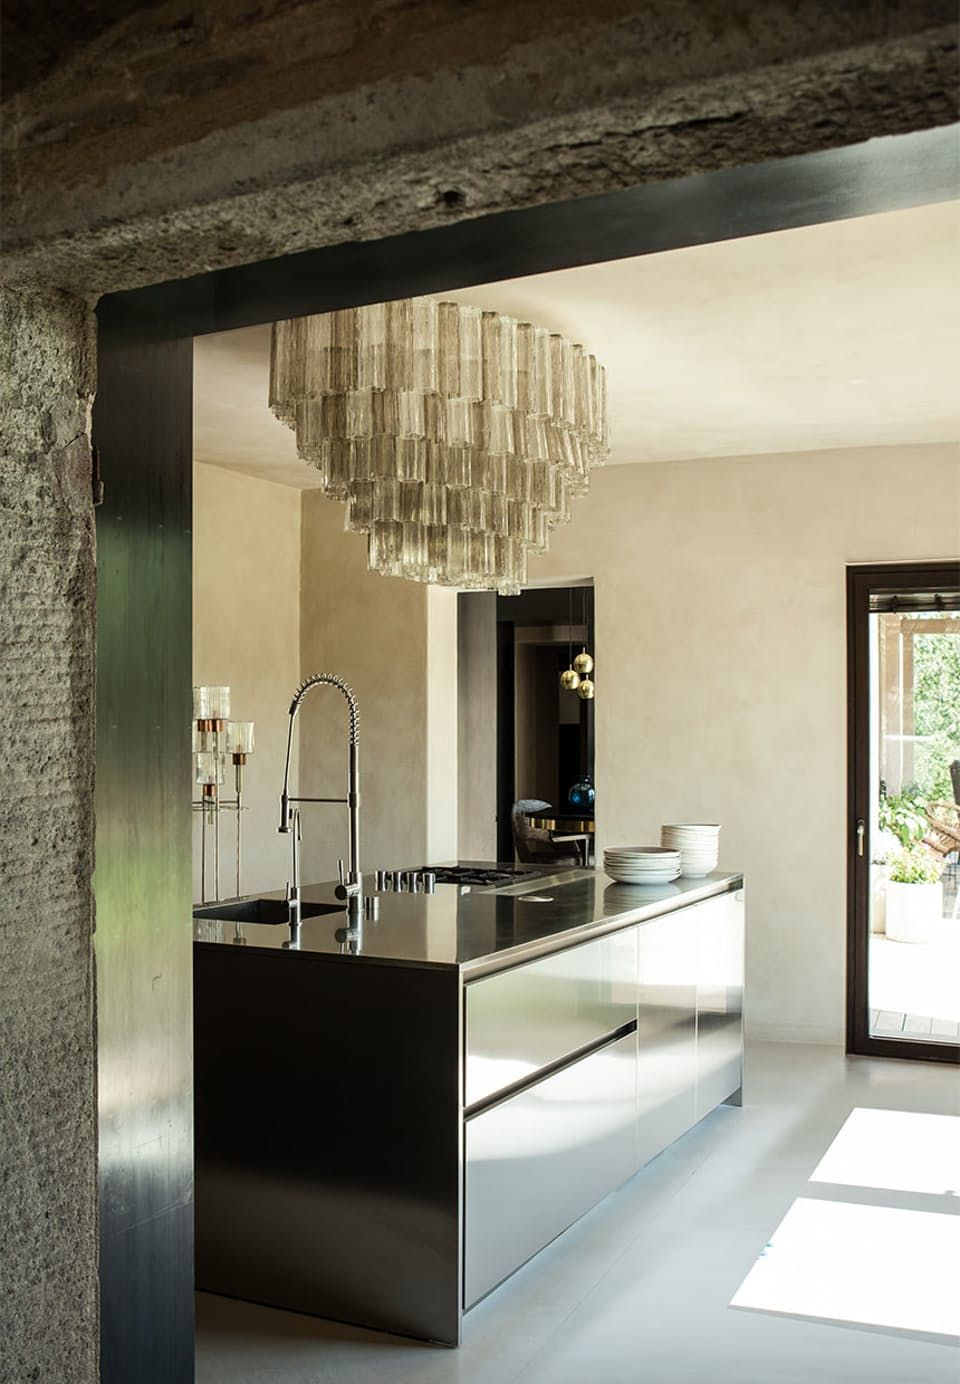 High Quality Industrial Kitchen With Extravagant Chandelier. The Industrial Look Is An  Interesting Contrast To The Old